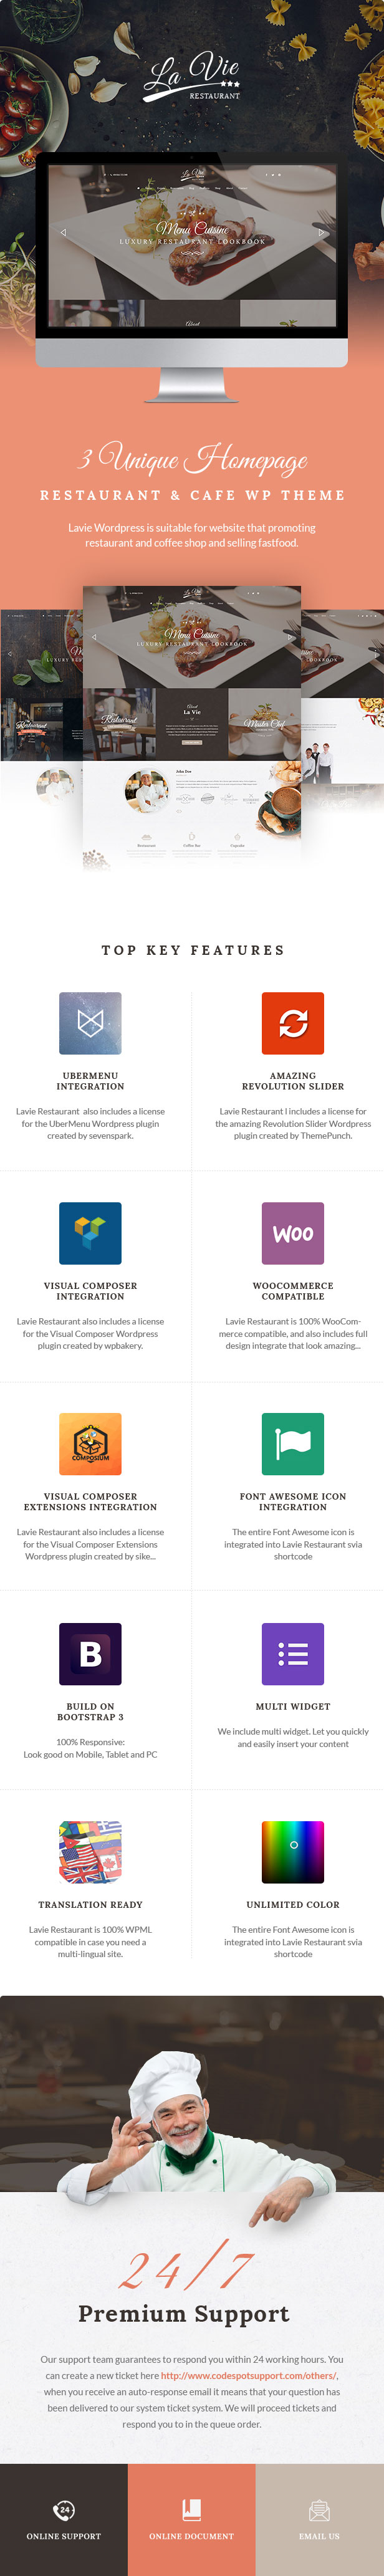 Lavie Restaurant WordPress Theme WooCommerce